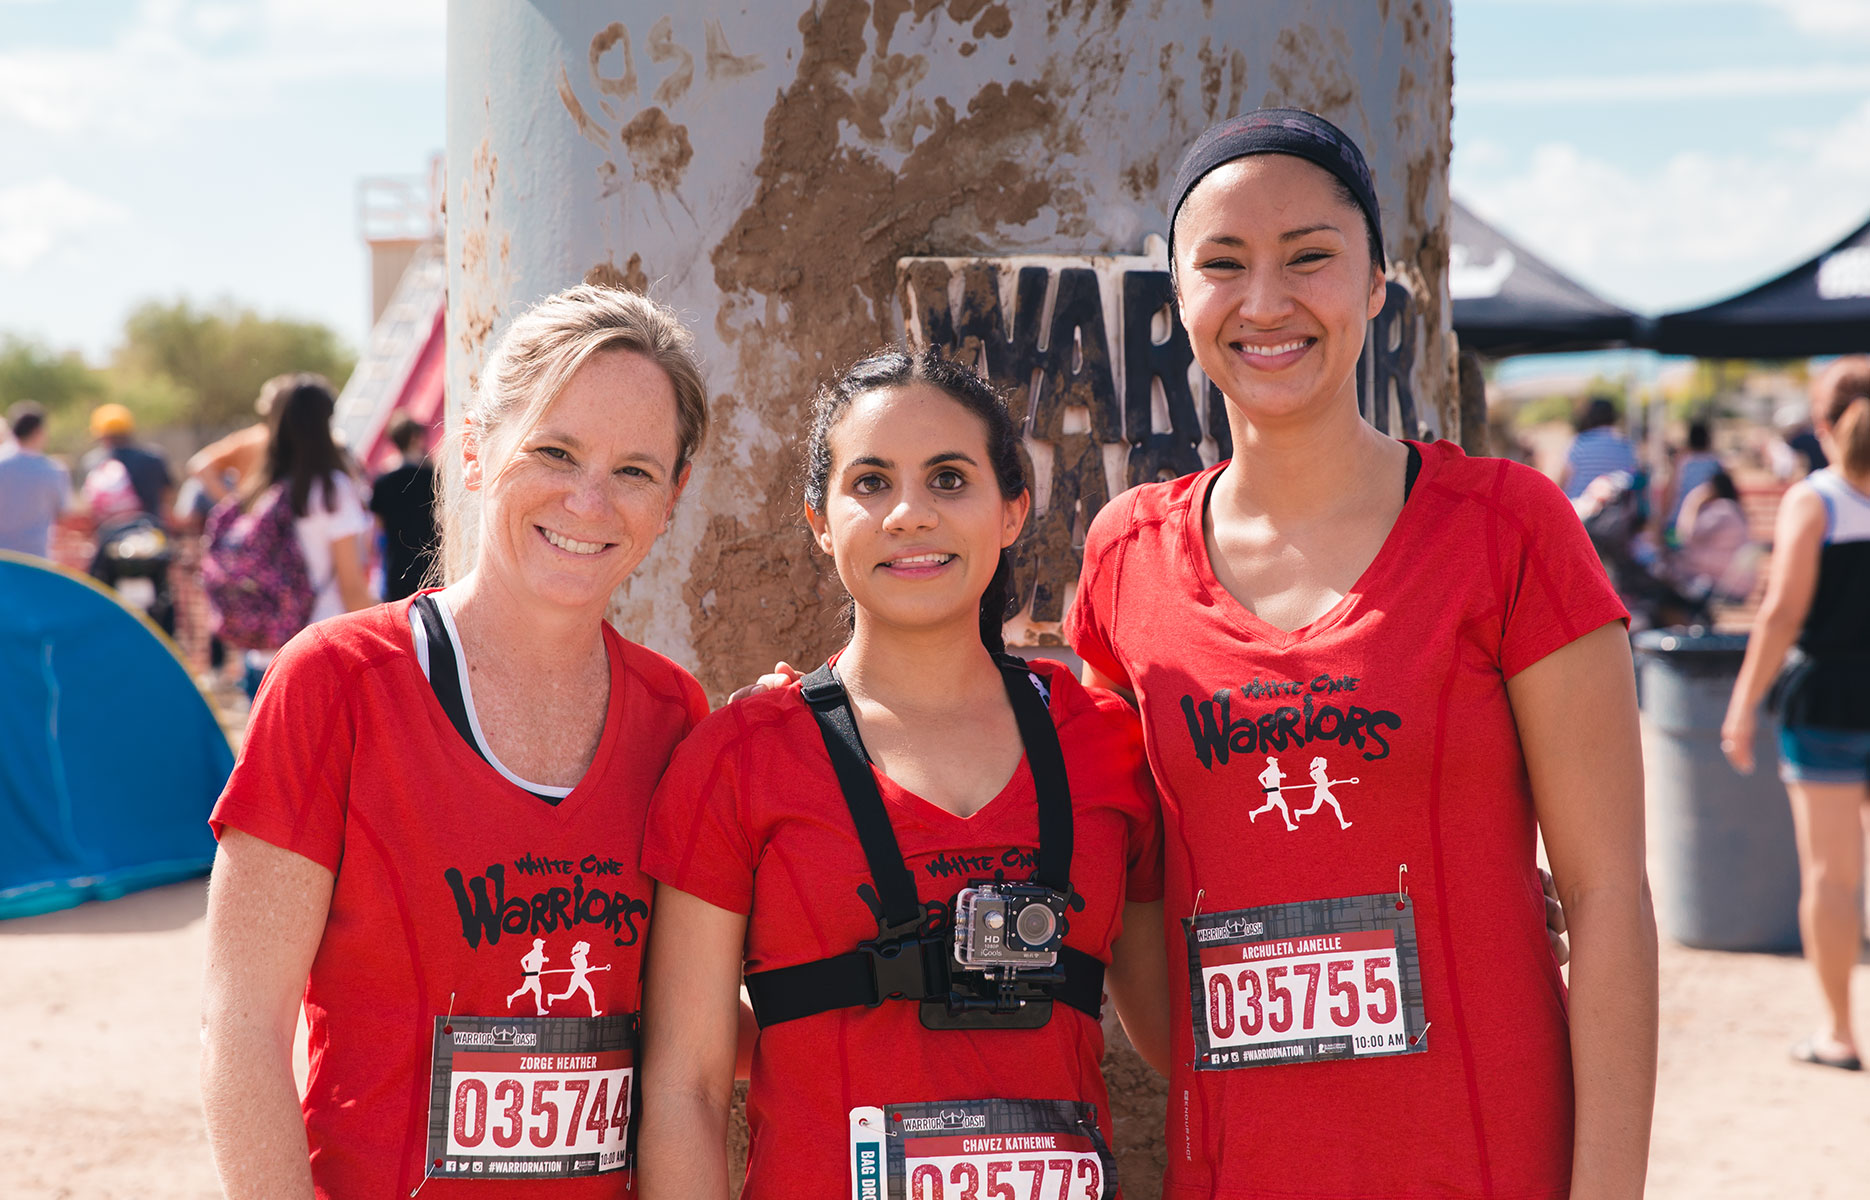 Western Window Systems Partners with Foundation for Blind Children in Warrior Dash Challenge